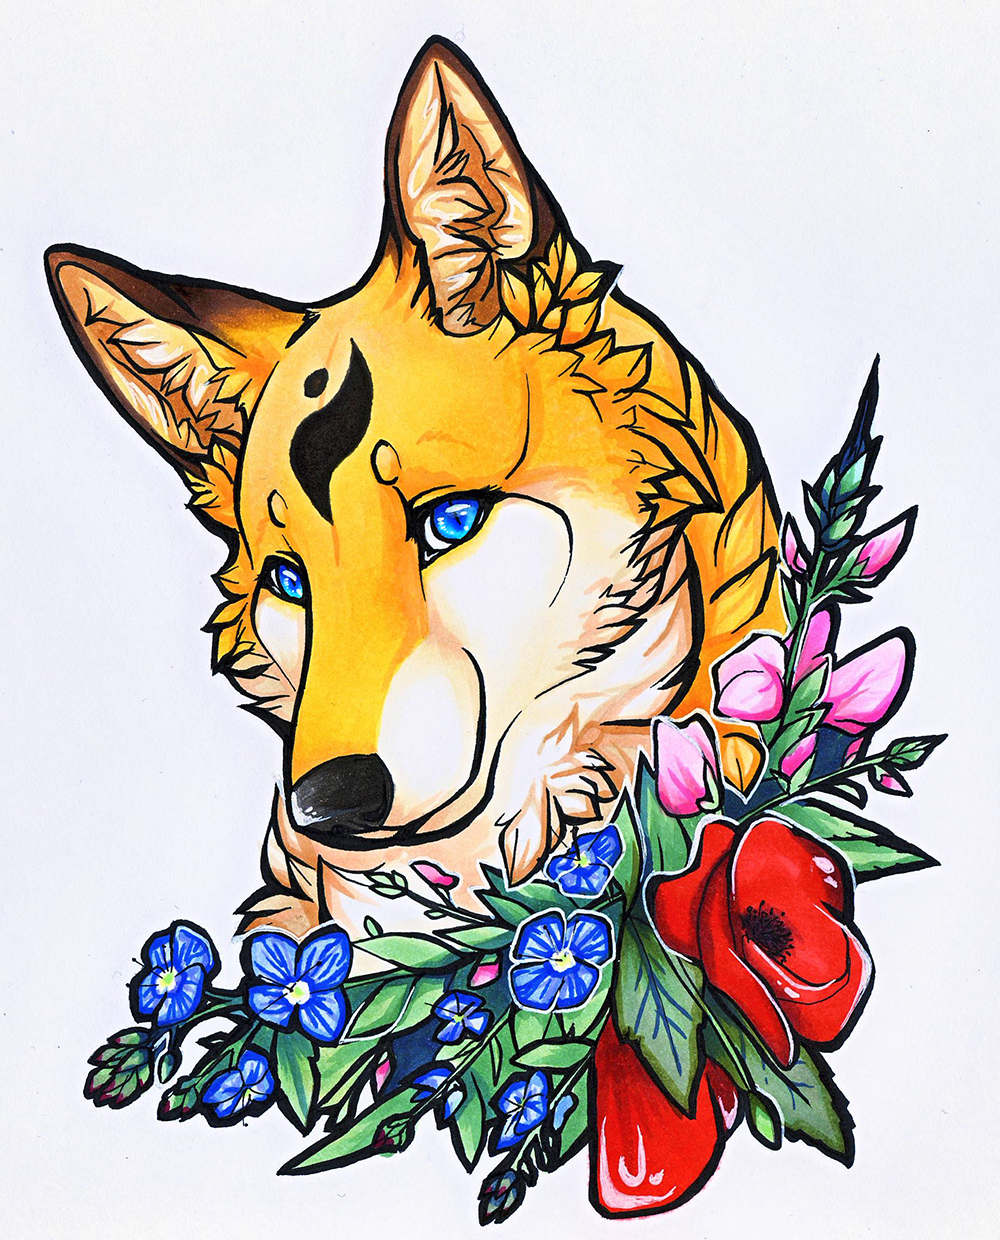 Most recent image: Floral Vixen